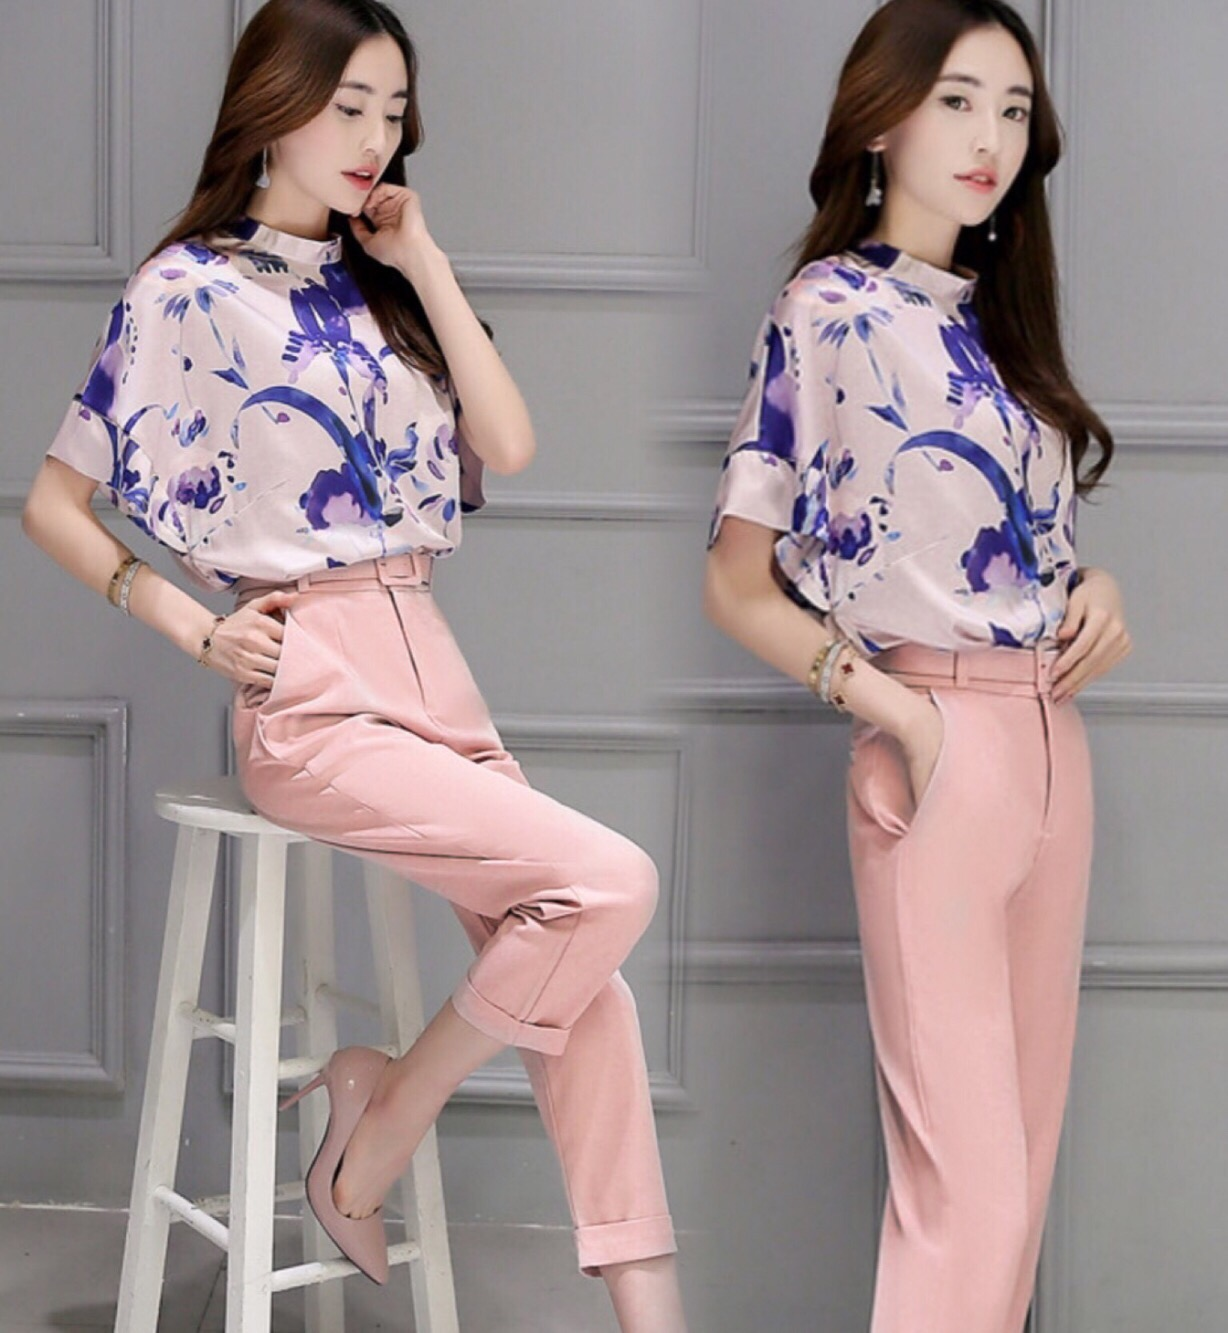 Daisy plump wearing shirt sleeves butterfly set